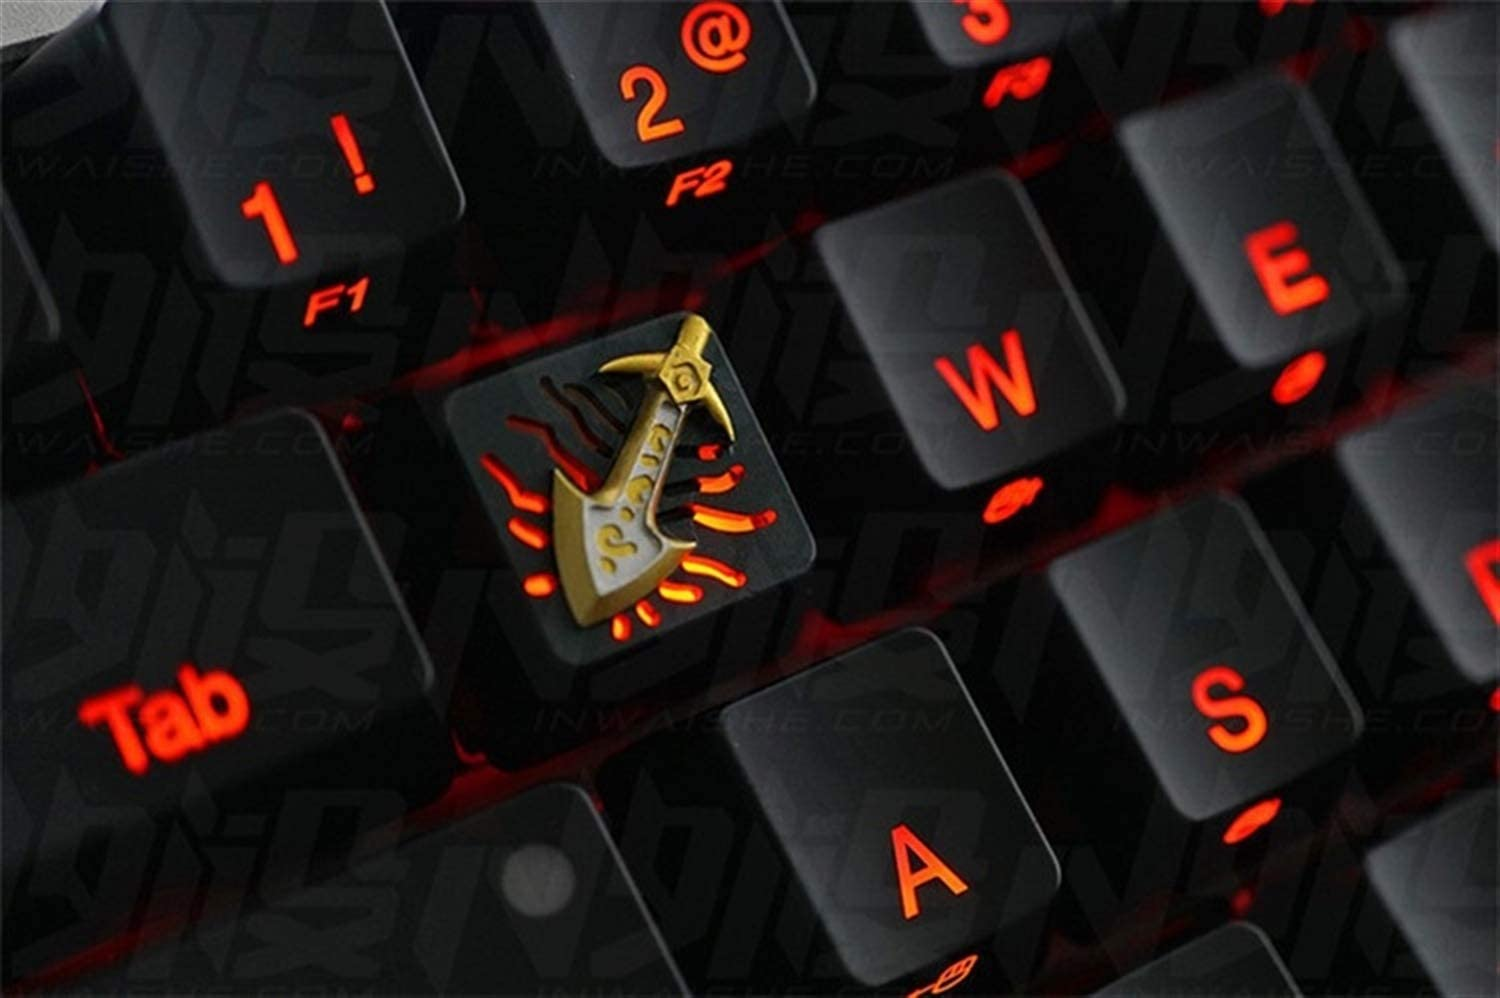 Color : Electric Knife Keyboard keycaps 1pc HolyOOPS Mechanical Keyboard Aluminium Alloy Key Cap for Infinity Edge All Metal Translucent Keycaps